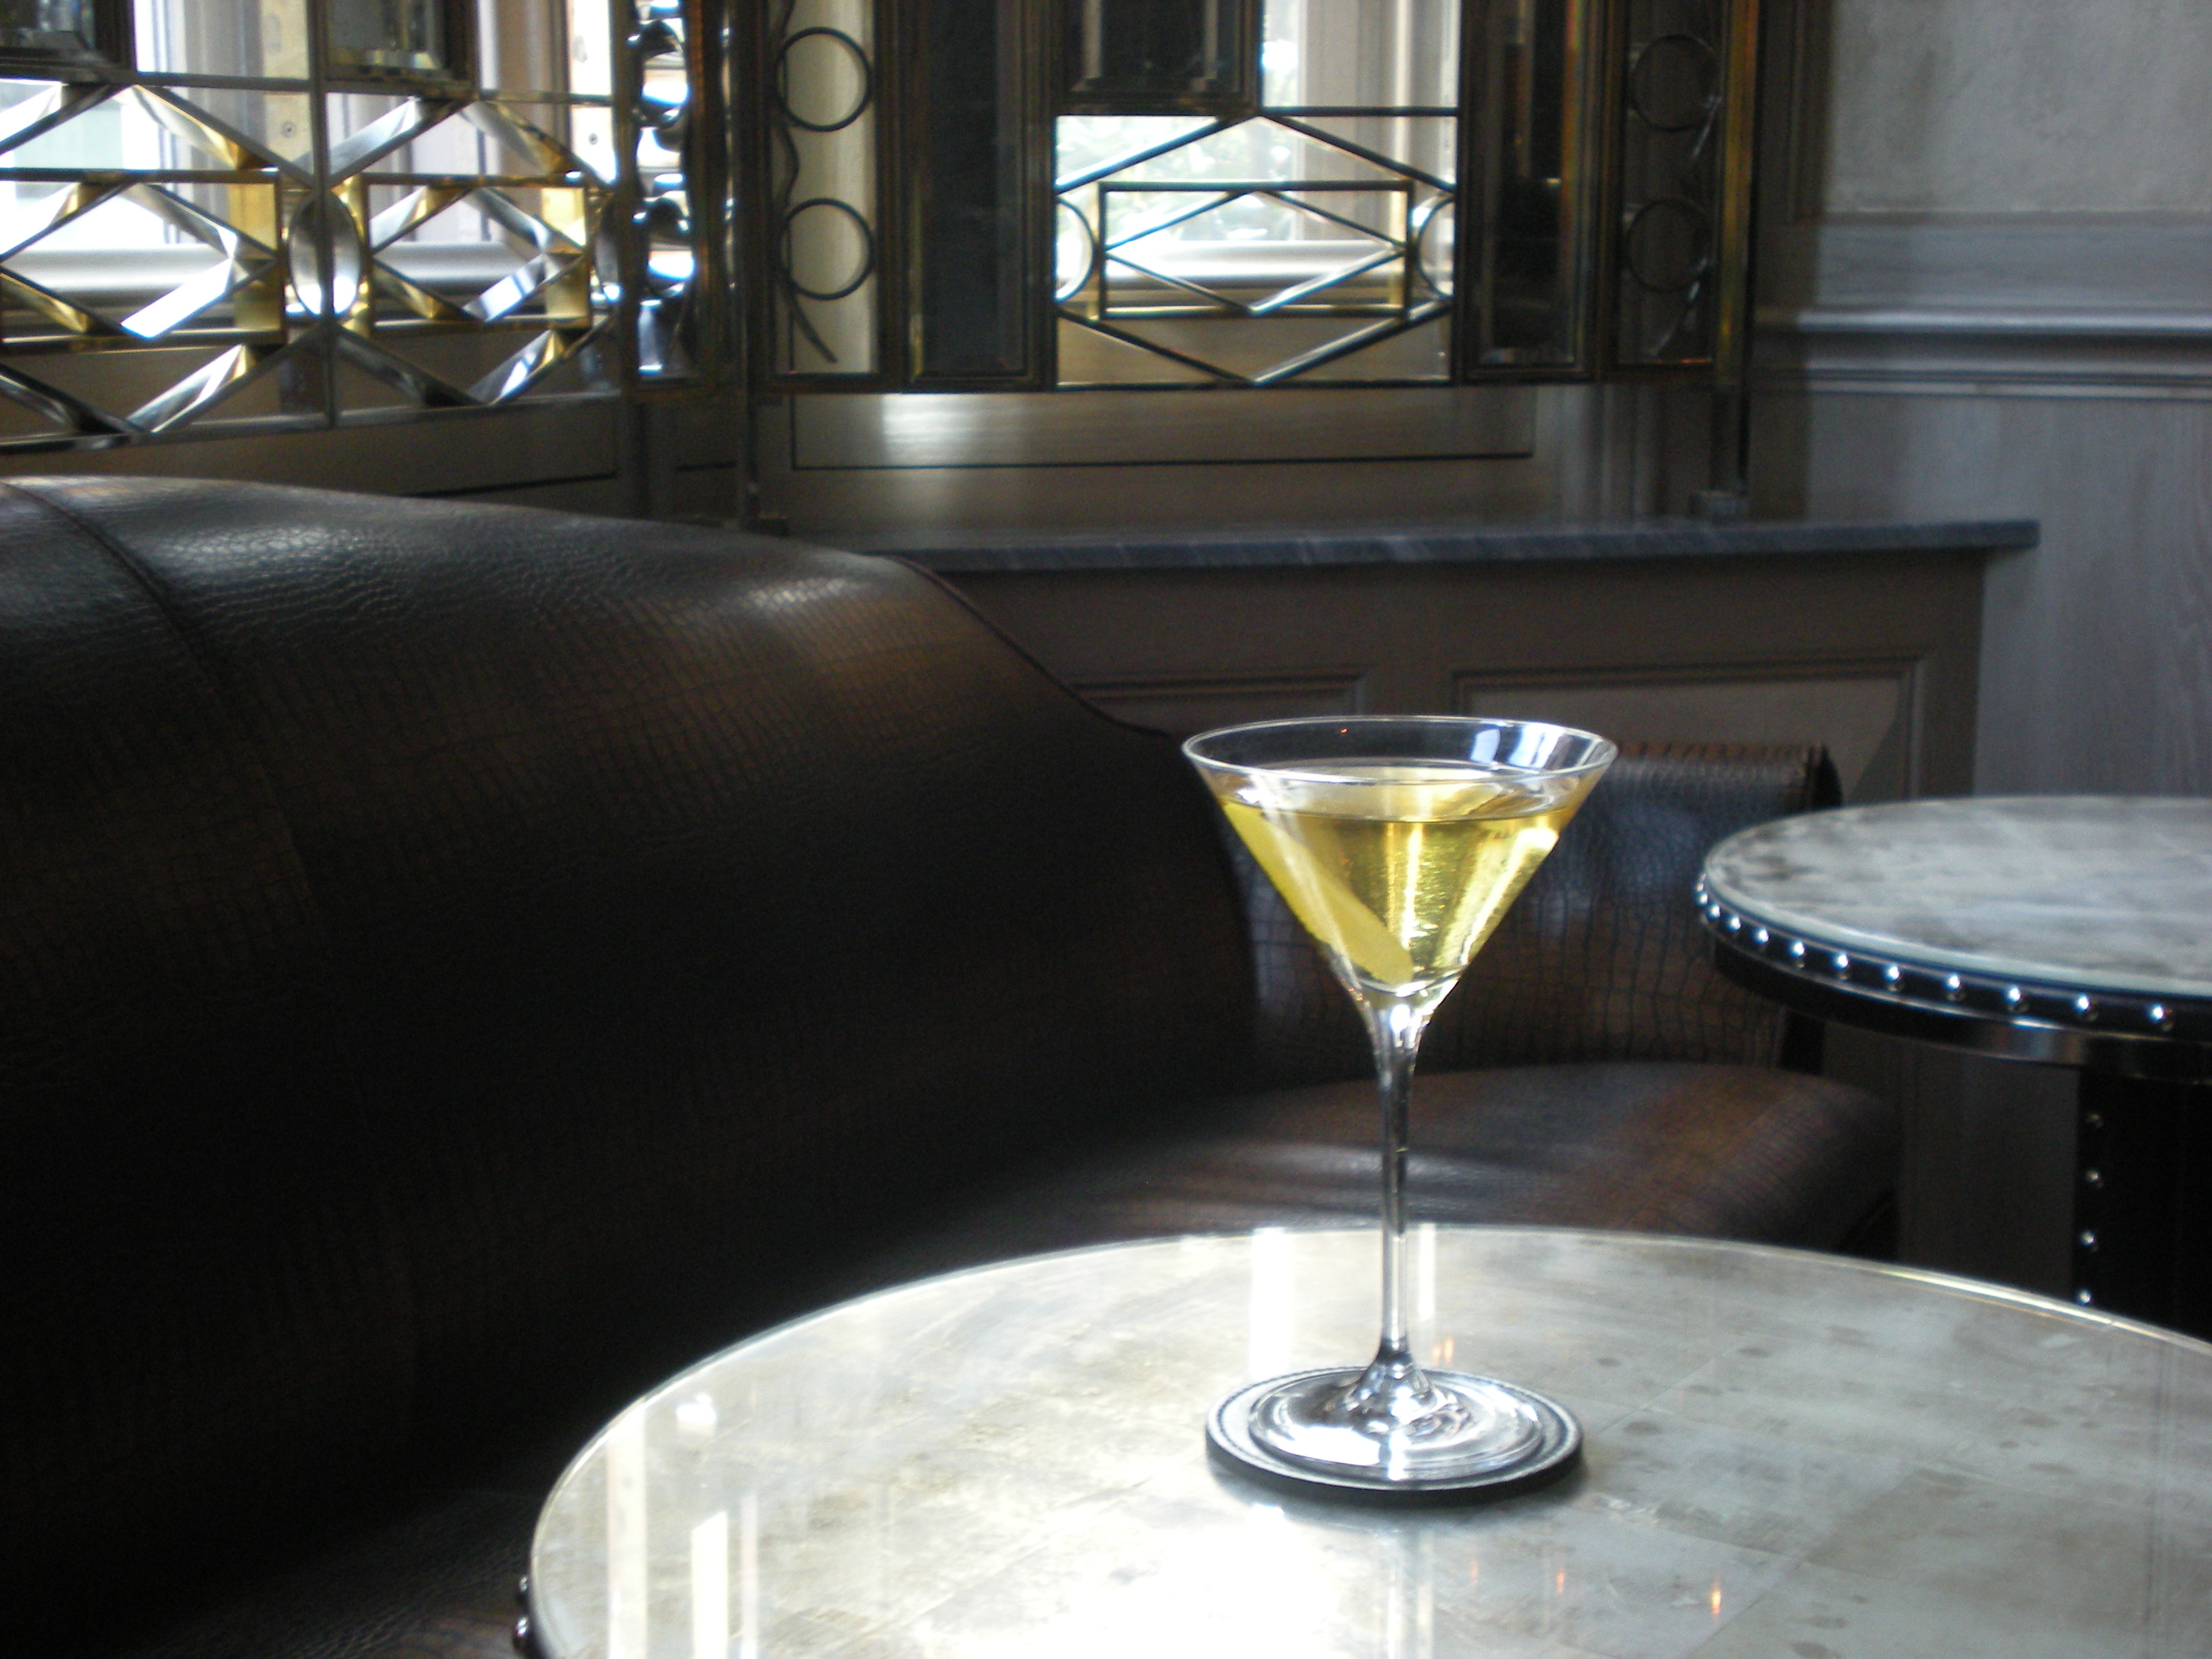 Custom-crafted martini at the Connaught Bar in London.